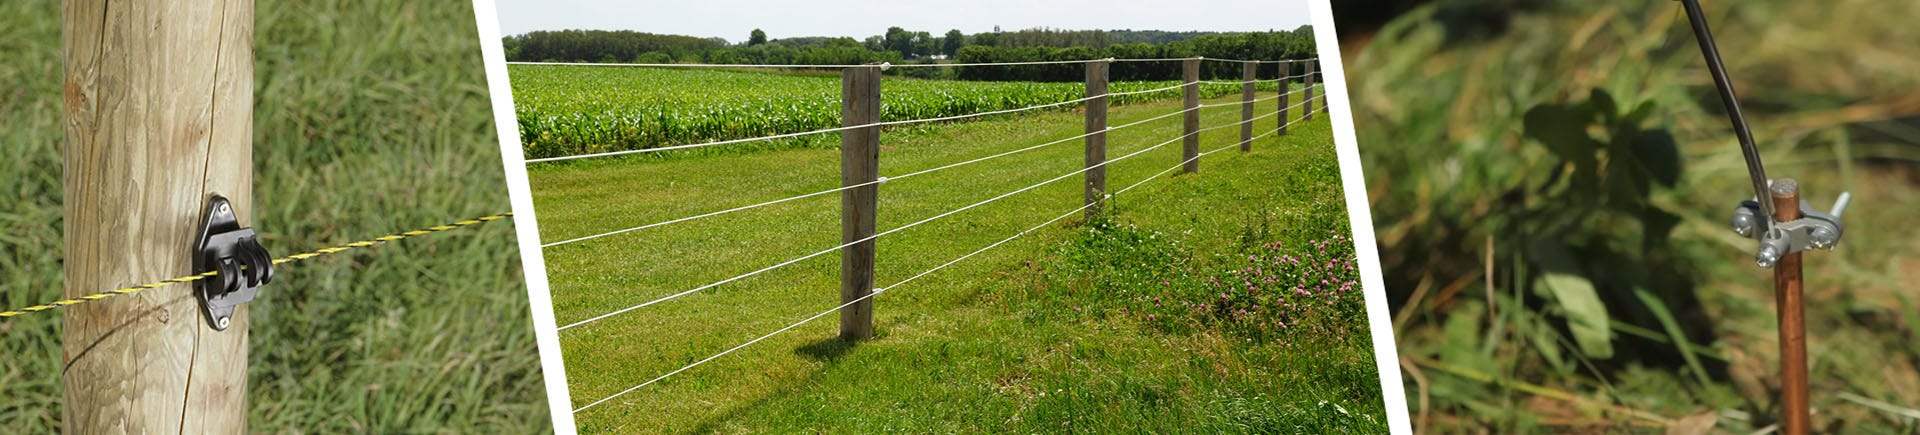 A closeup of a fence insulator, a fence dividing a field, and a closeup of a fence grounding rod